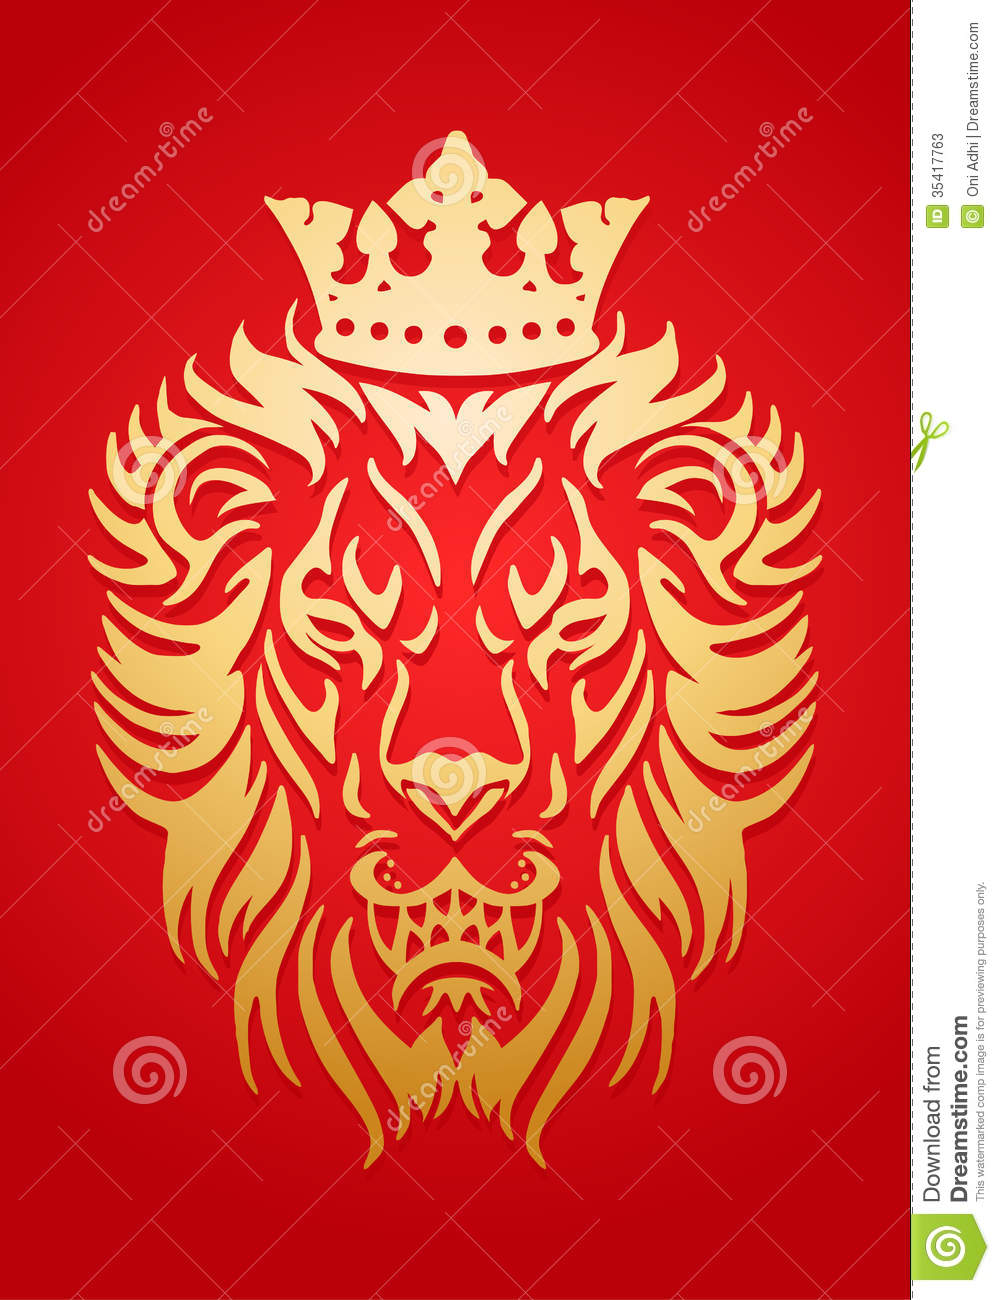 Lion king with crown - photo#9